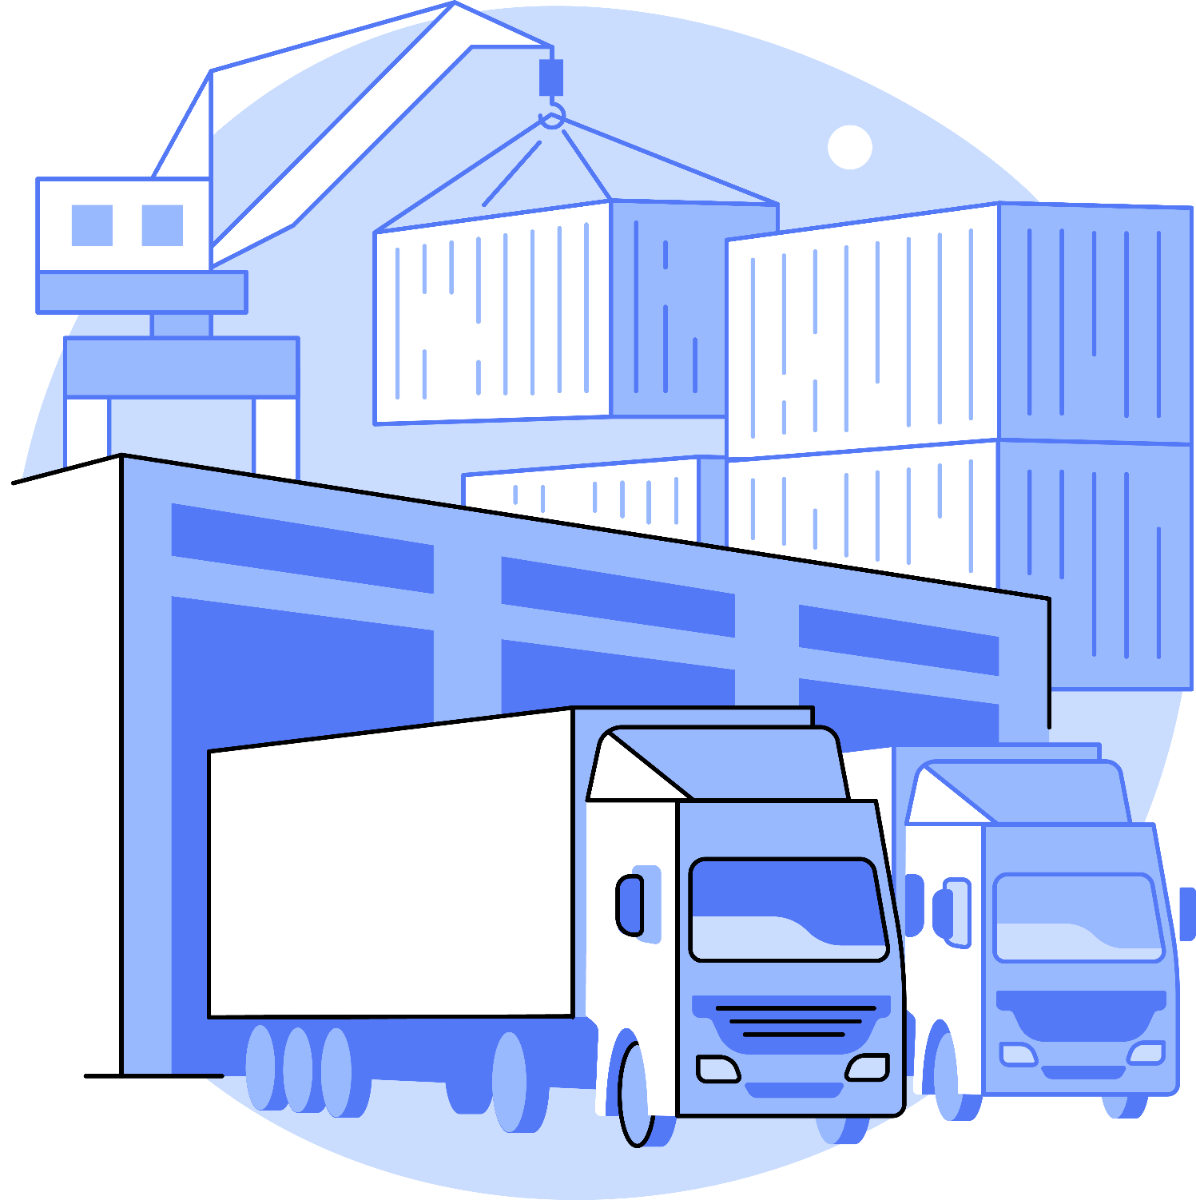 [moving trucks in front of a storage facility illustration]